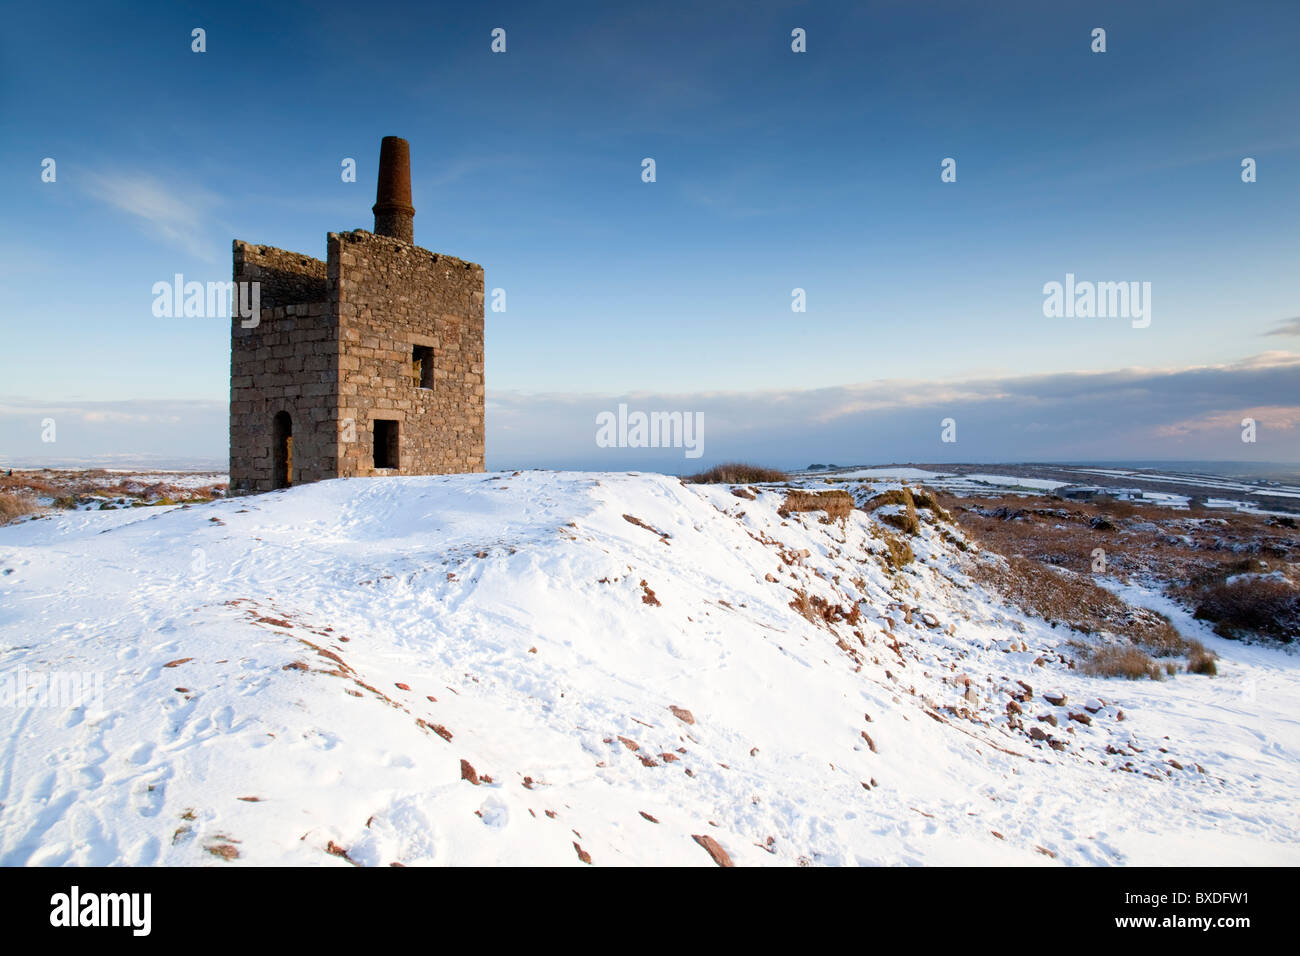 Ding Dong mine in snow; Cornwall - Stock Image